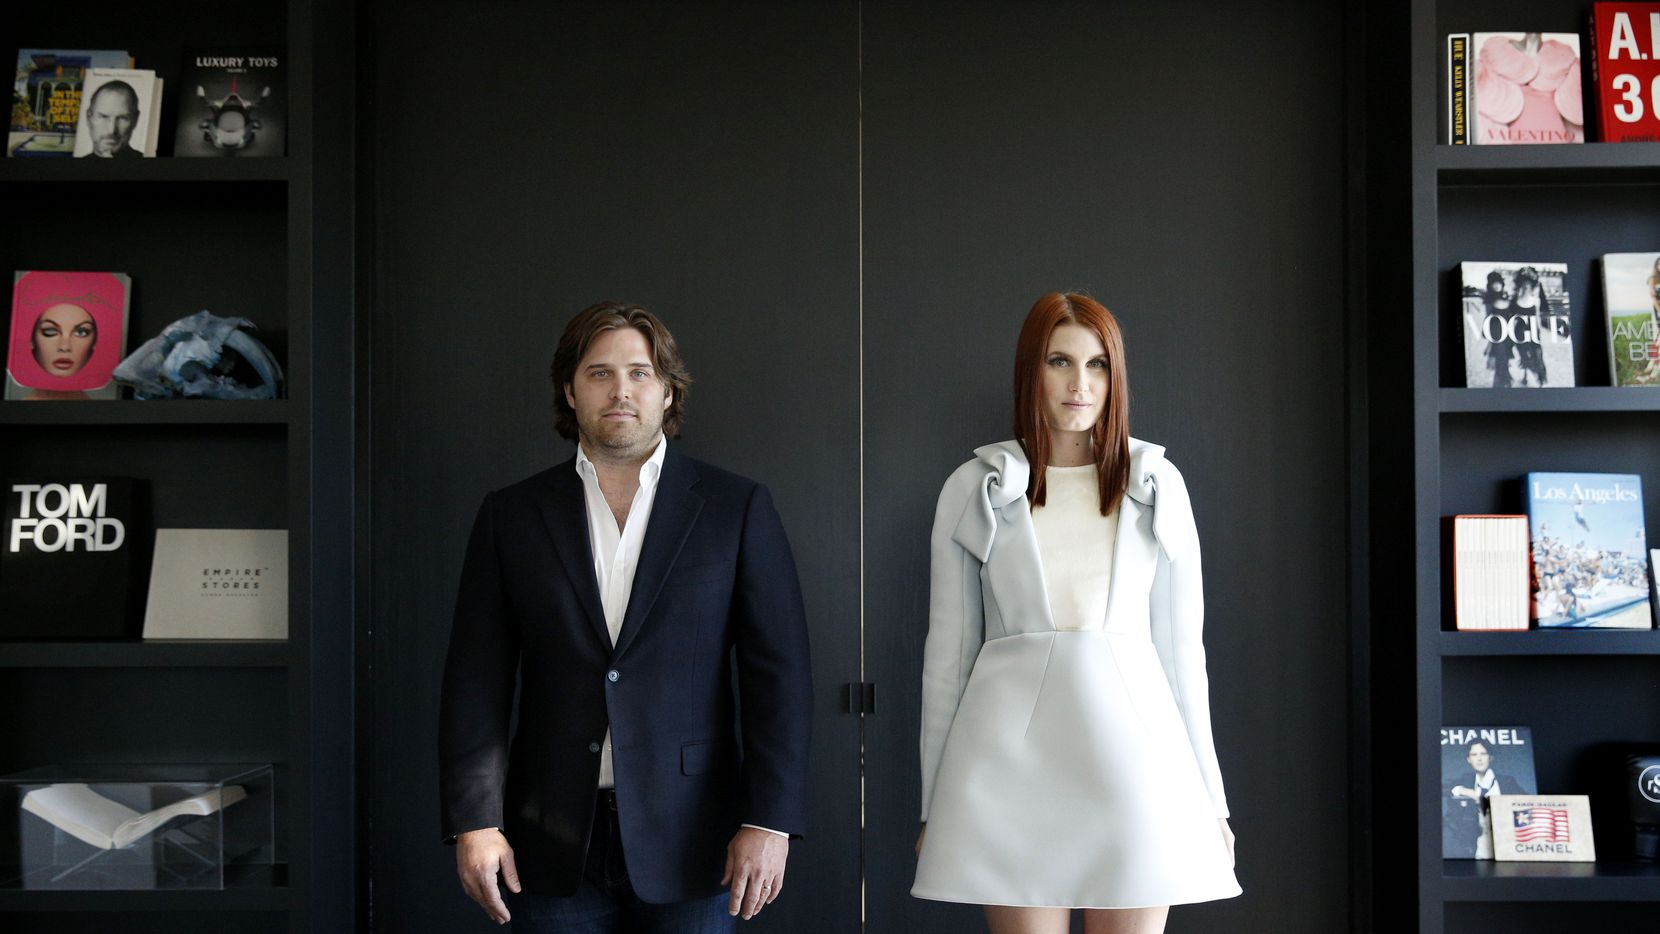 Baxter Box and Amber Venz Box, co-founders of rewardStyle, pose for a photograph in the startup's new offices in The Centrum building in Dallas on April 4, 2016. RewardStyle is one of the most successful start-ups in recent Dallas history. (Rose Baca/The Dallas Morning News)